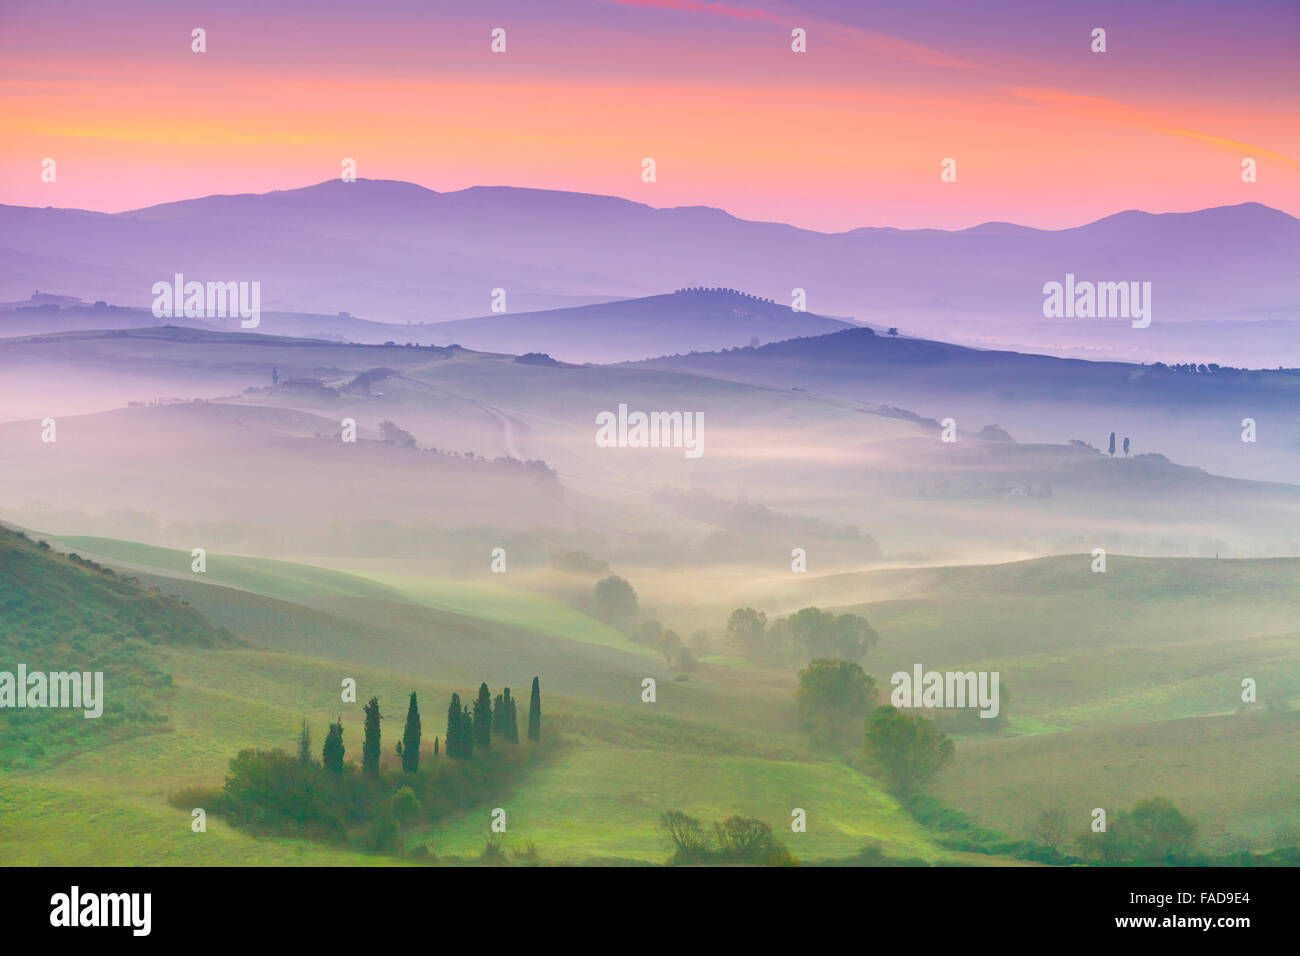 San Quirico D'Orcia, Tuscany landscape, Italy - Stock Image